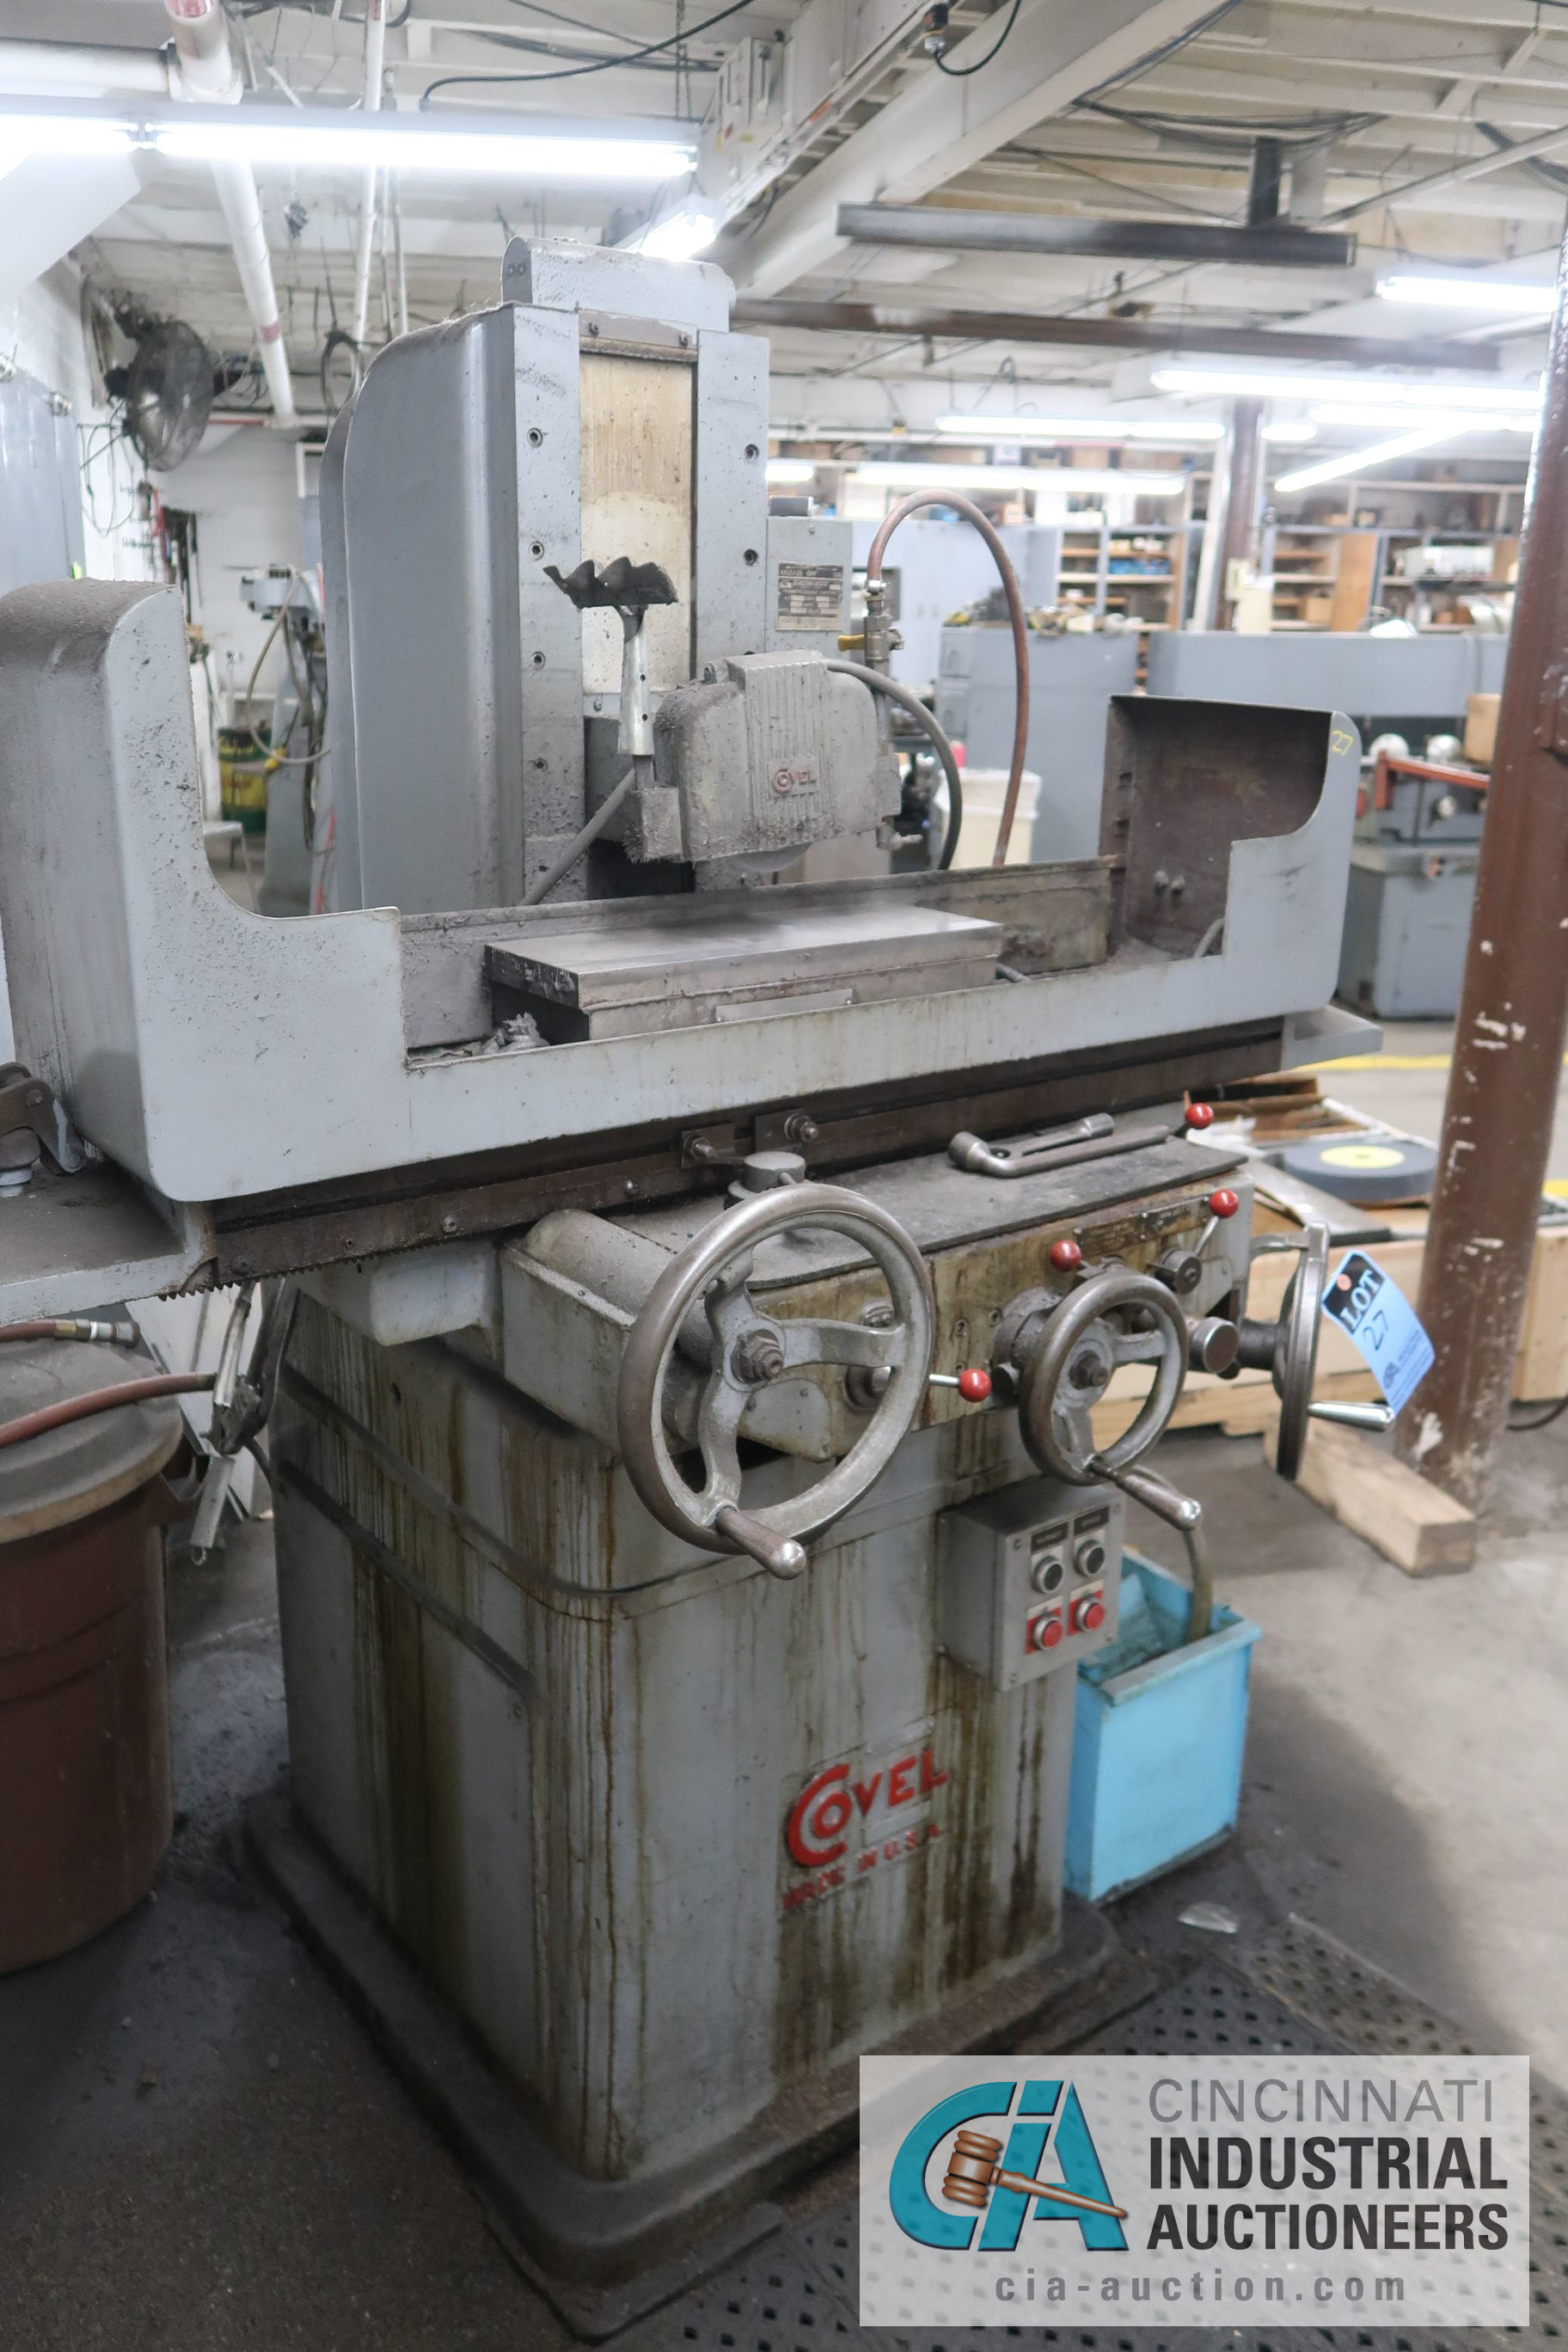 "6"" X 18"" COVEL SURFACE GRINDER; S/N 10H-544, MAGNA-LOCK CORP ELECTROMAGNETIC CHUCK - Image 2 of 6"